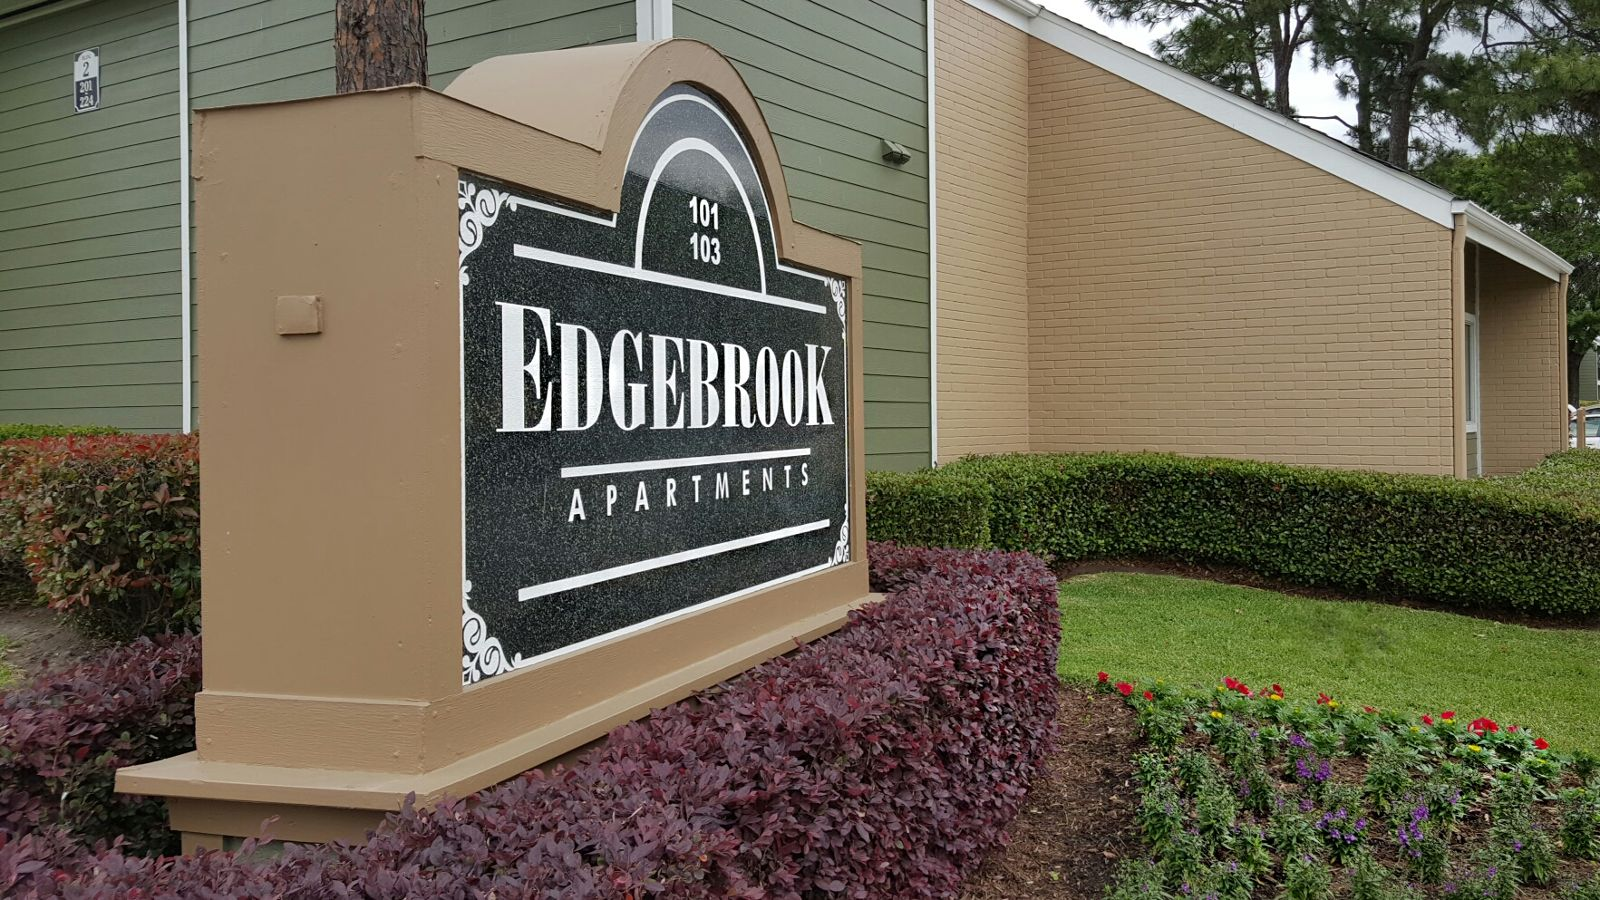 Entrance of Edgebrook Apartments in Houston, TX